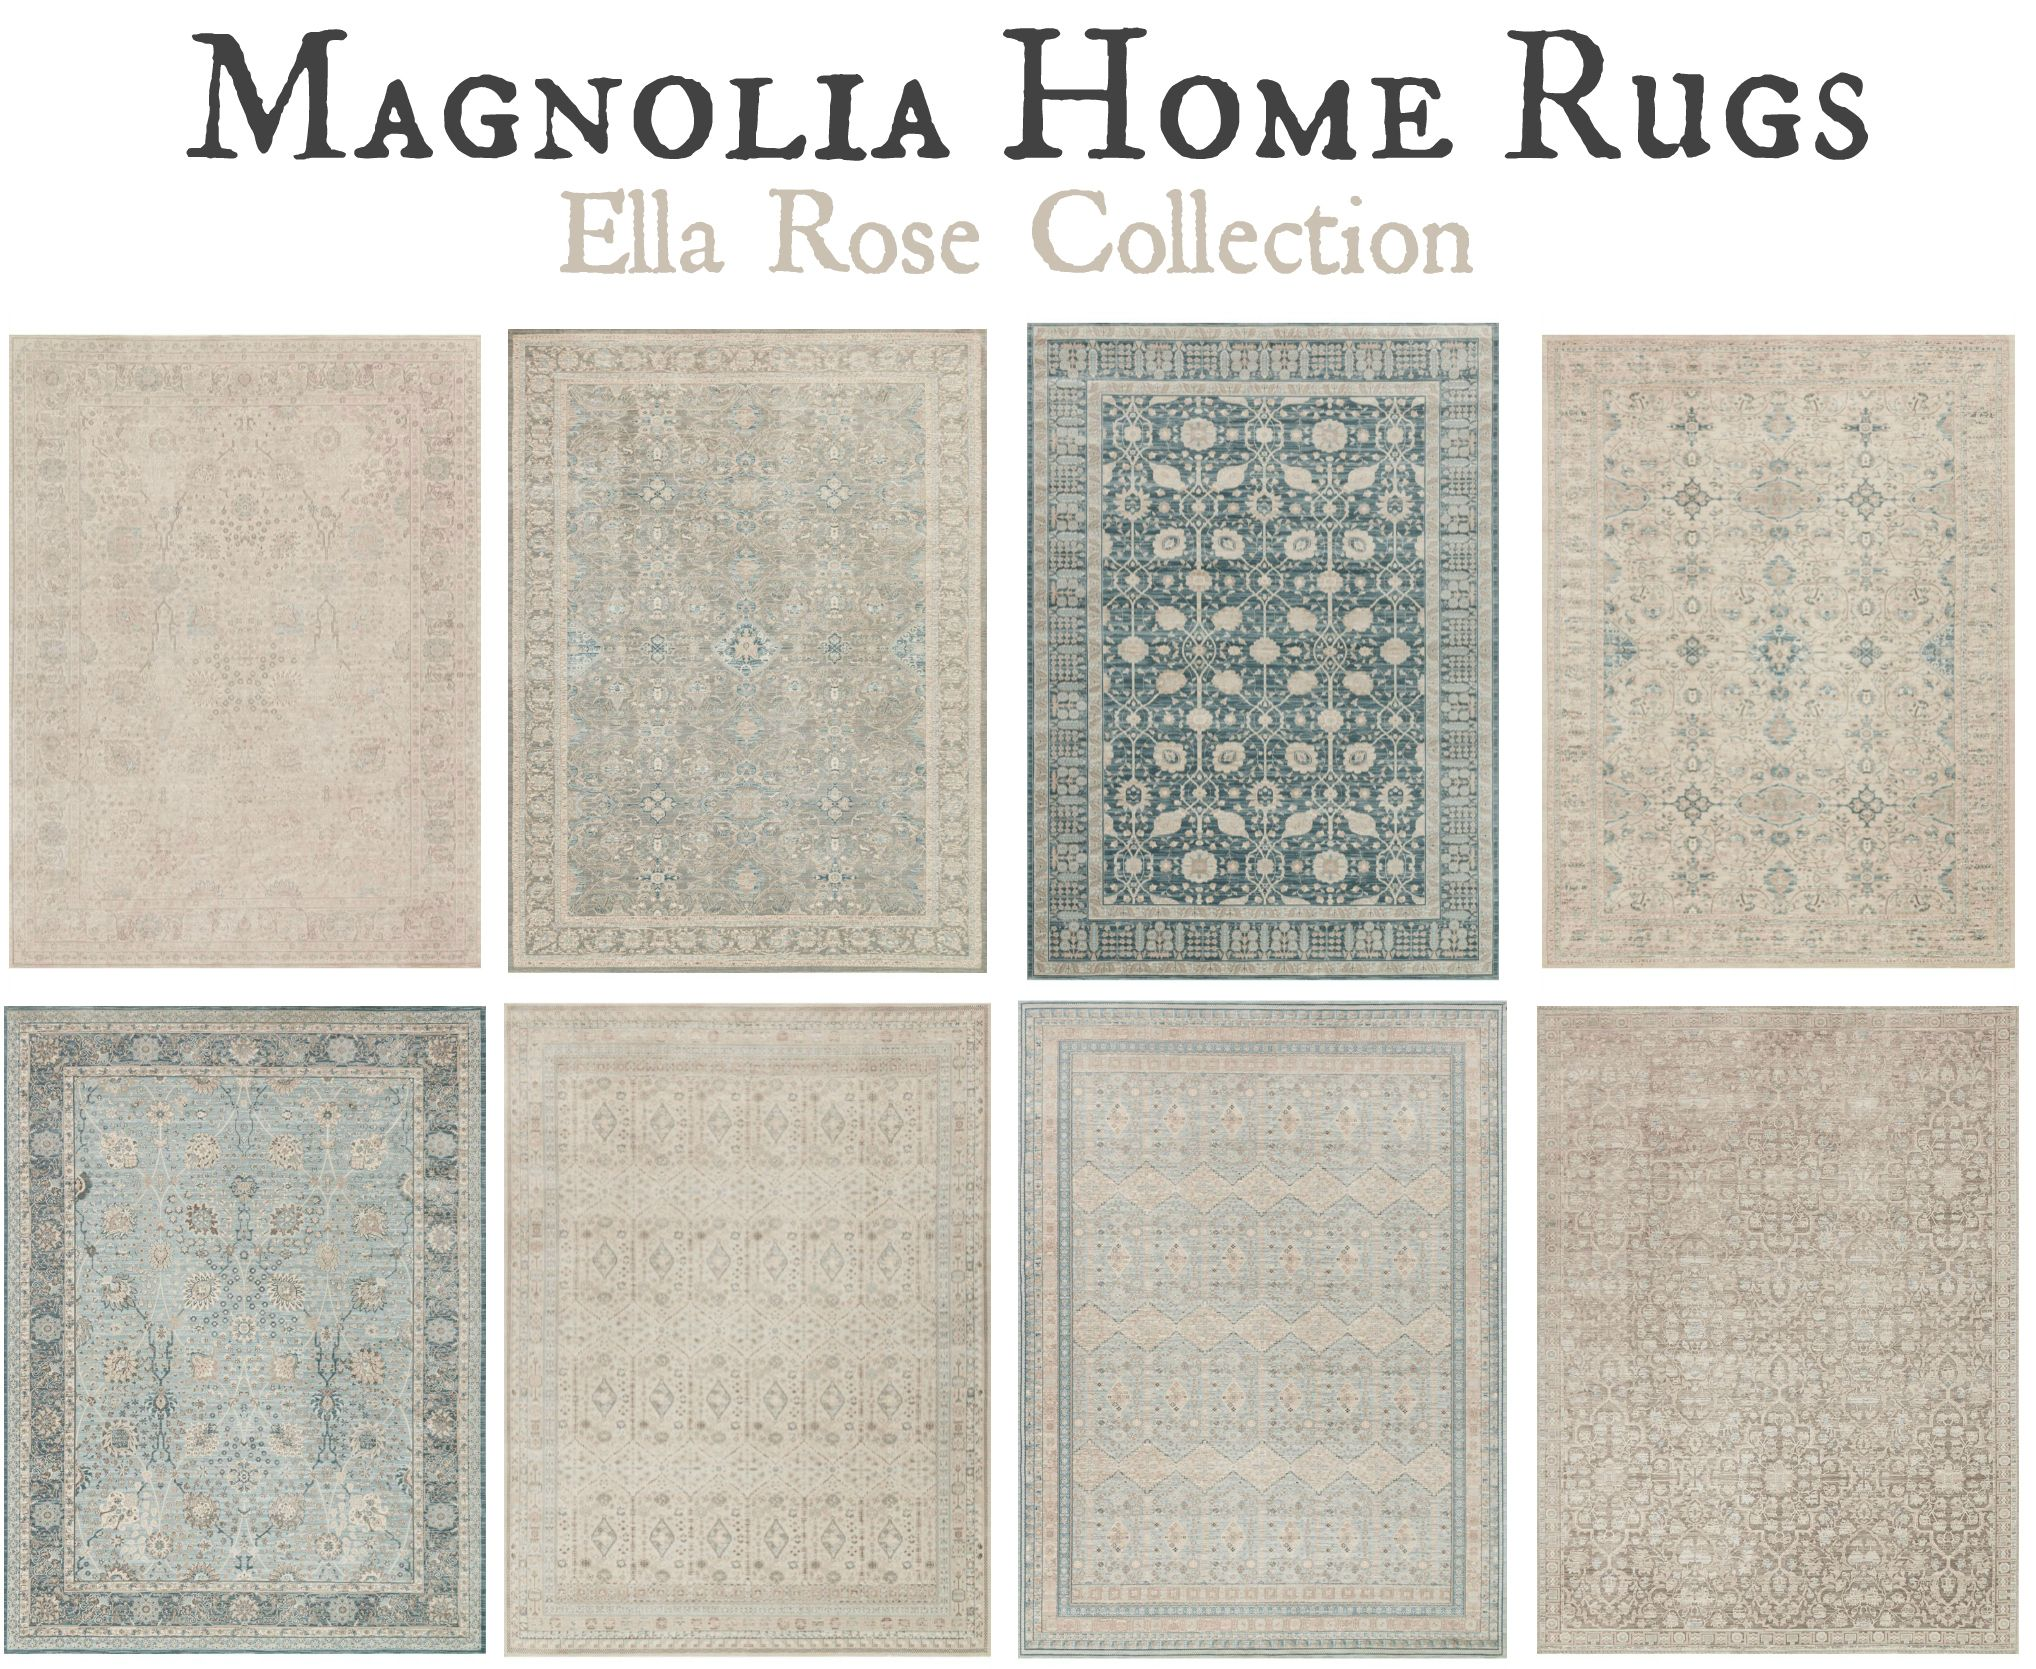 Magnolia Home Rugs Ella Rose Collection